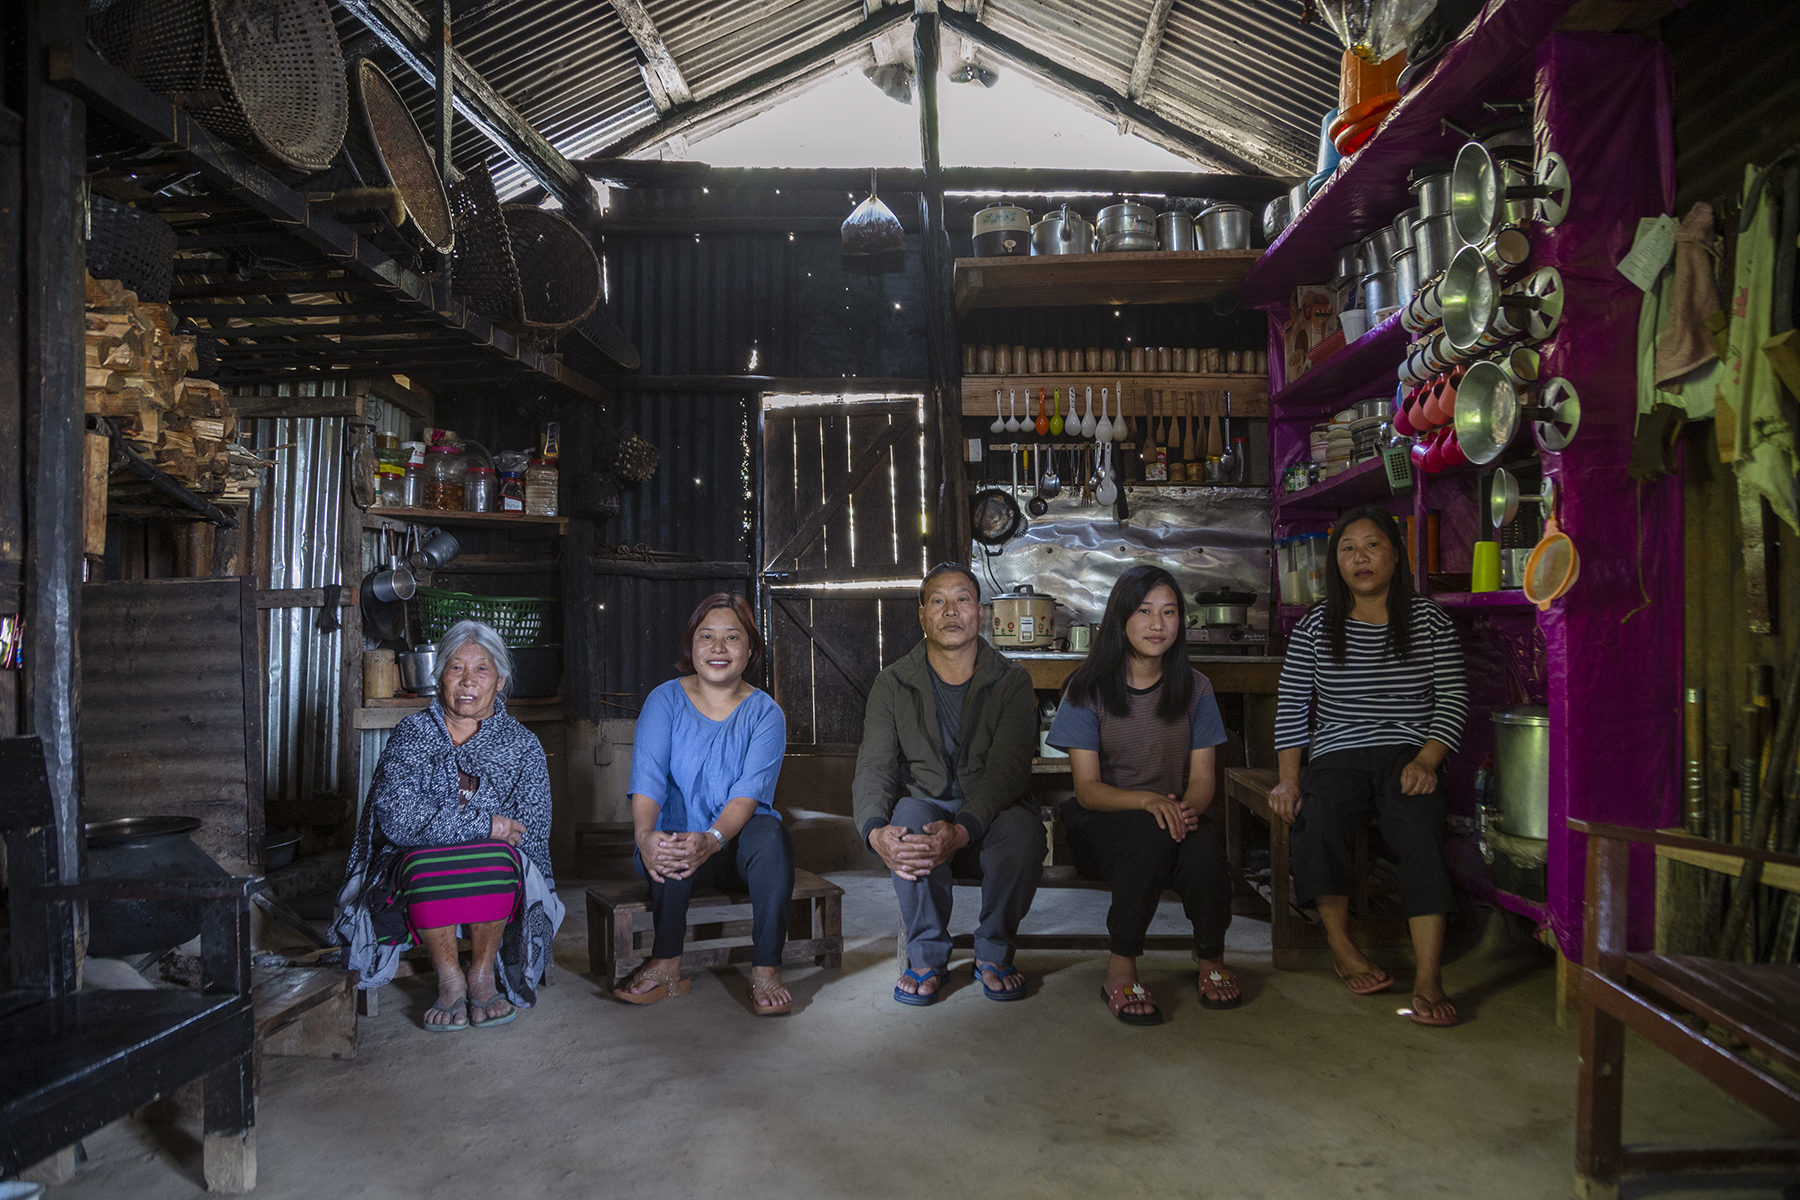 Vikengunu posing with her family seated on wooden benches in the kitchen area of a large room. From left to right: Her mother Hovineile Kera (84), with white hair tied back, wears a green, magenta and black striped Naga skirt with a large grey shawl wrapped around her arms and shoulders. Vikengunu (42) is in navy blue tight pants and sky-blue top. Her brother Vimeziho Kera (53) wears a brown jacket and grey trousers. Her niece Zavihonu Kera (16) wears a brown and grey round-necked T-shirt and black pants. Her sister Noekrunu Kera (43) wears black, knee-length shorts and a three-quarter-sleeve T-shirt with horizontal black and white stripes. They are surrounded by racks crammed with cooking utensils, and rows of hanging pans and spoons of different sizes.